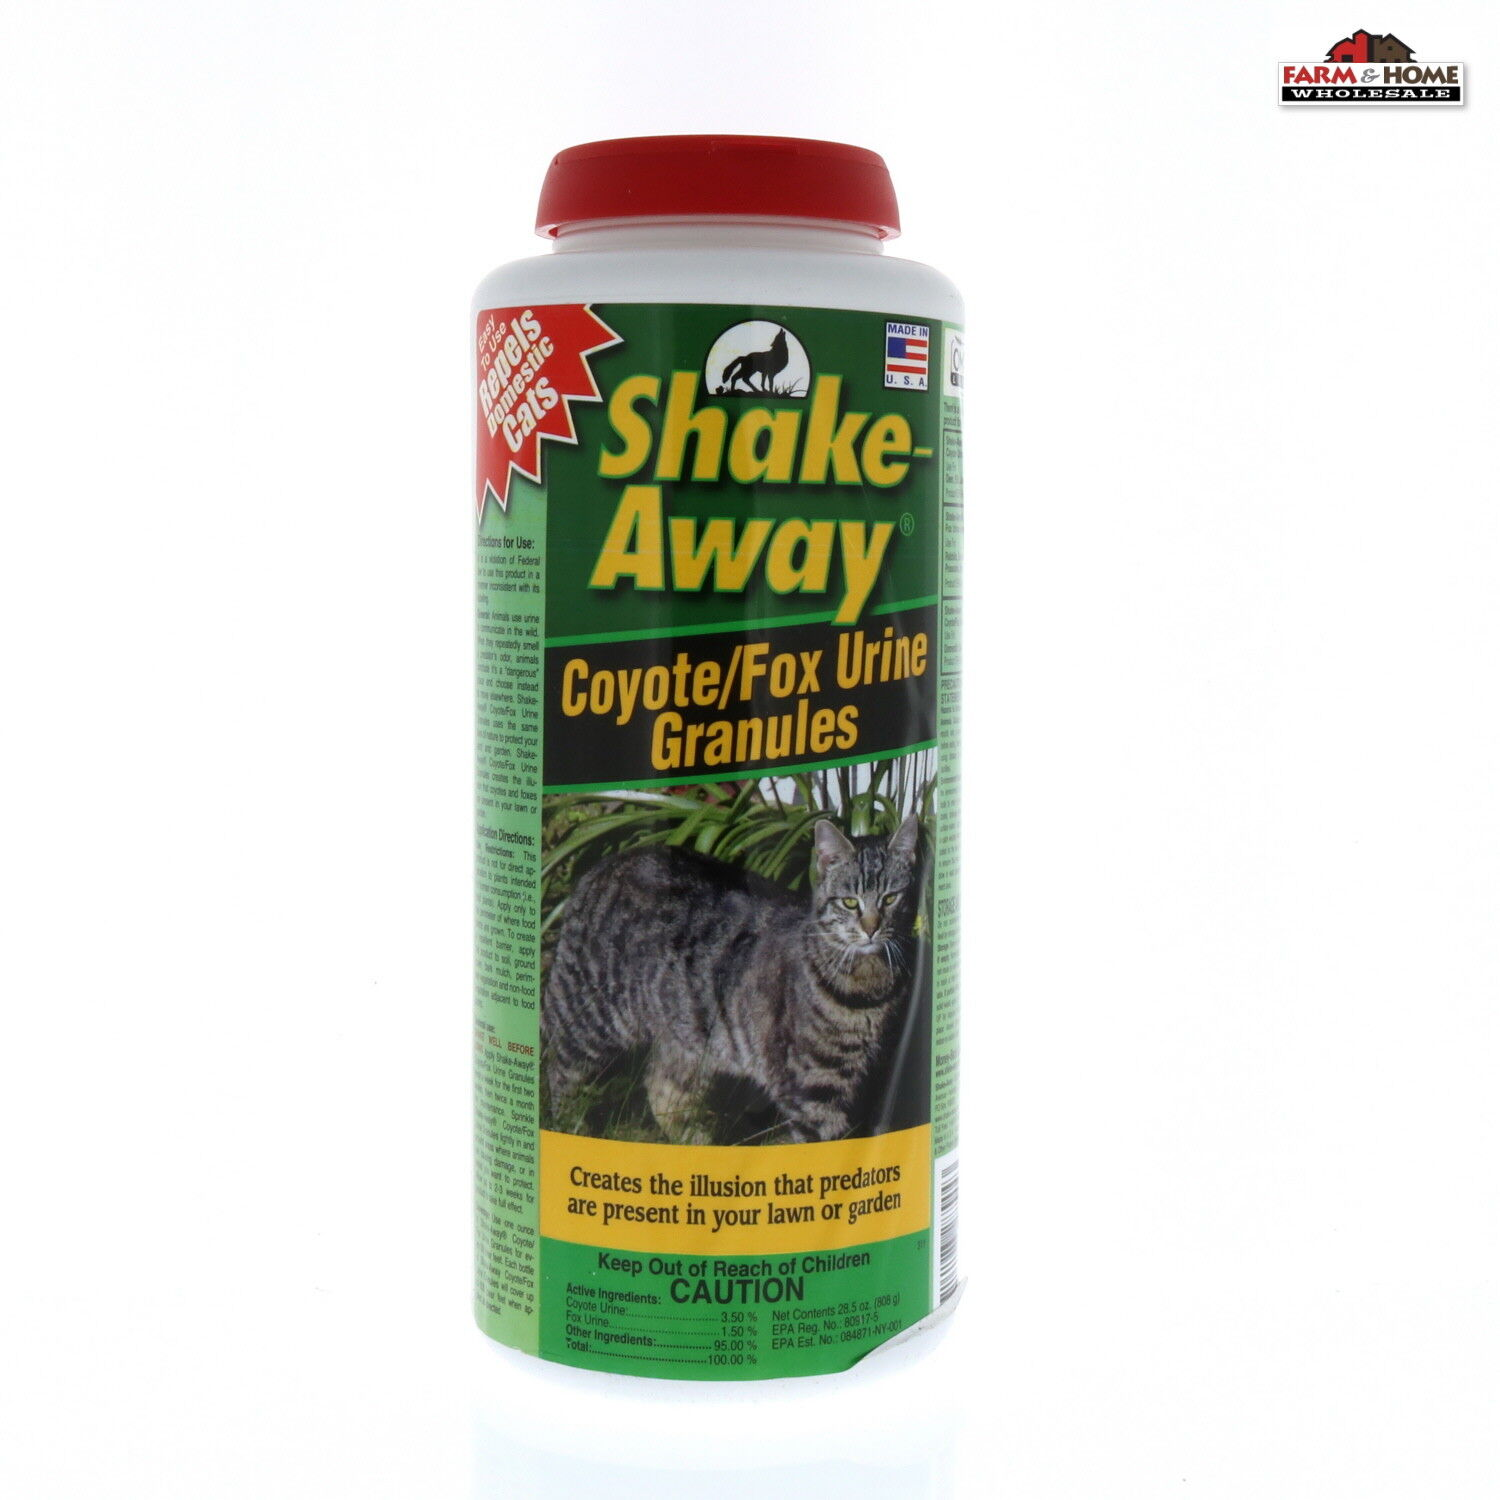 Domestic Cat Repellent Feral Cat Repellent Coyote/Fox Urine